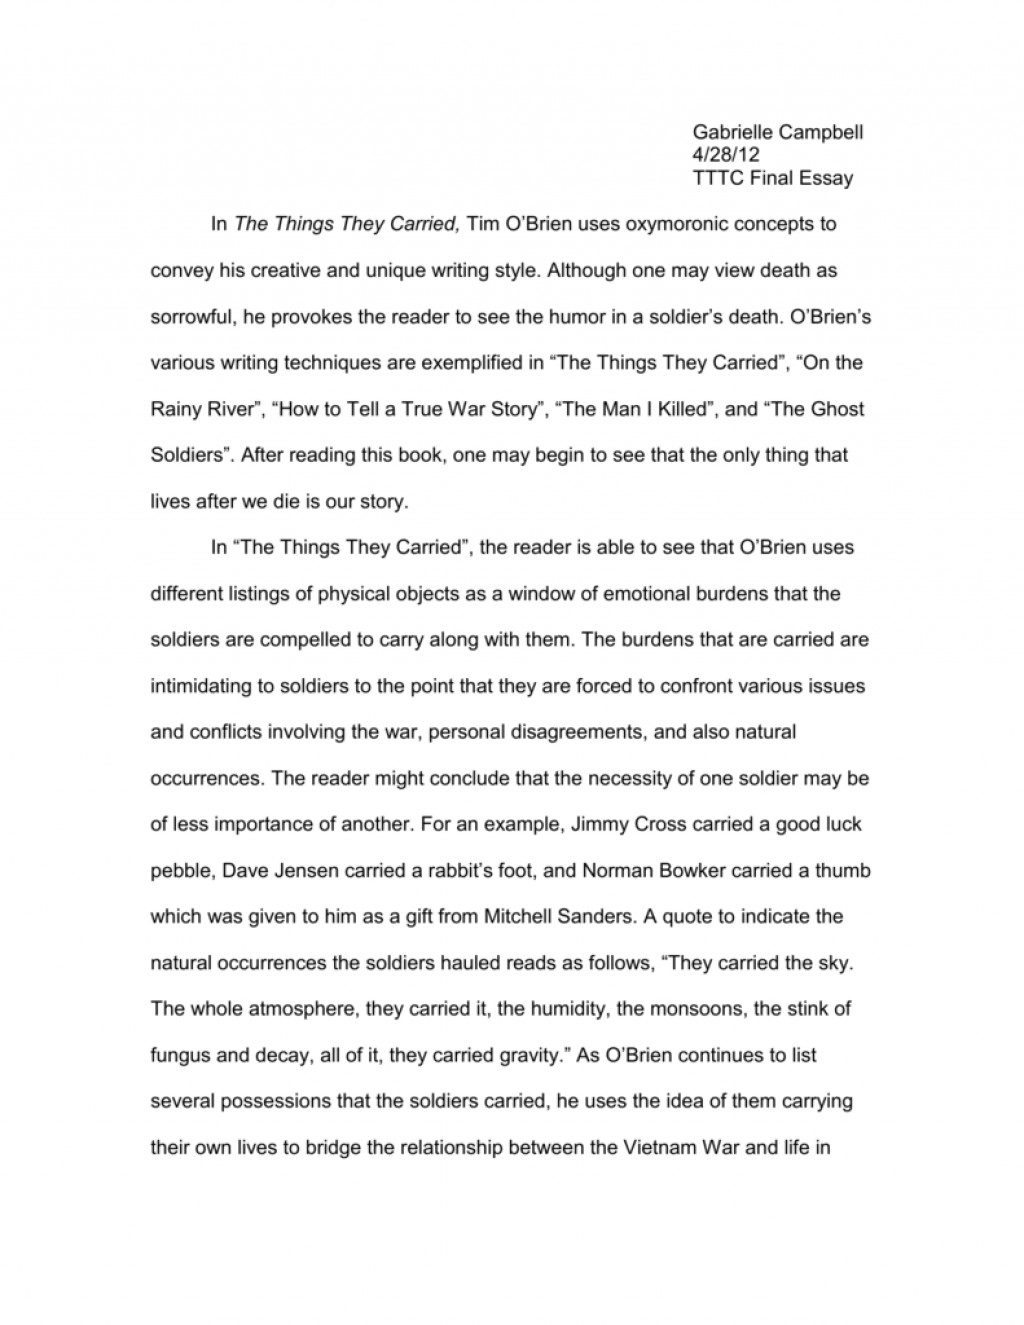 001 The Things They Carried Essay Example 008028277 1 Incredible Prompts Ideas Large